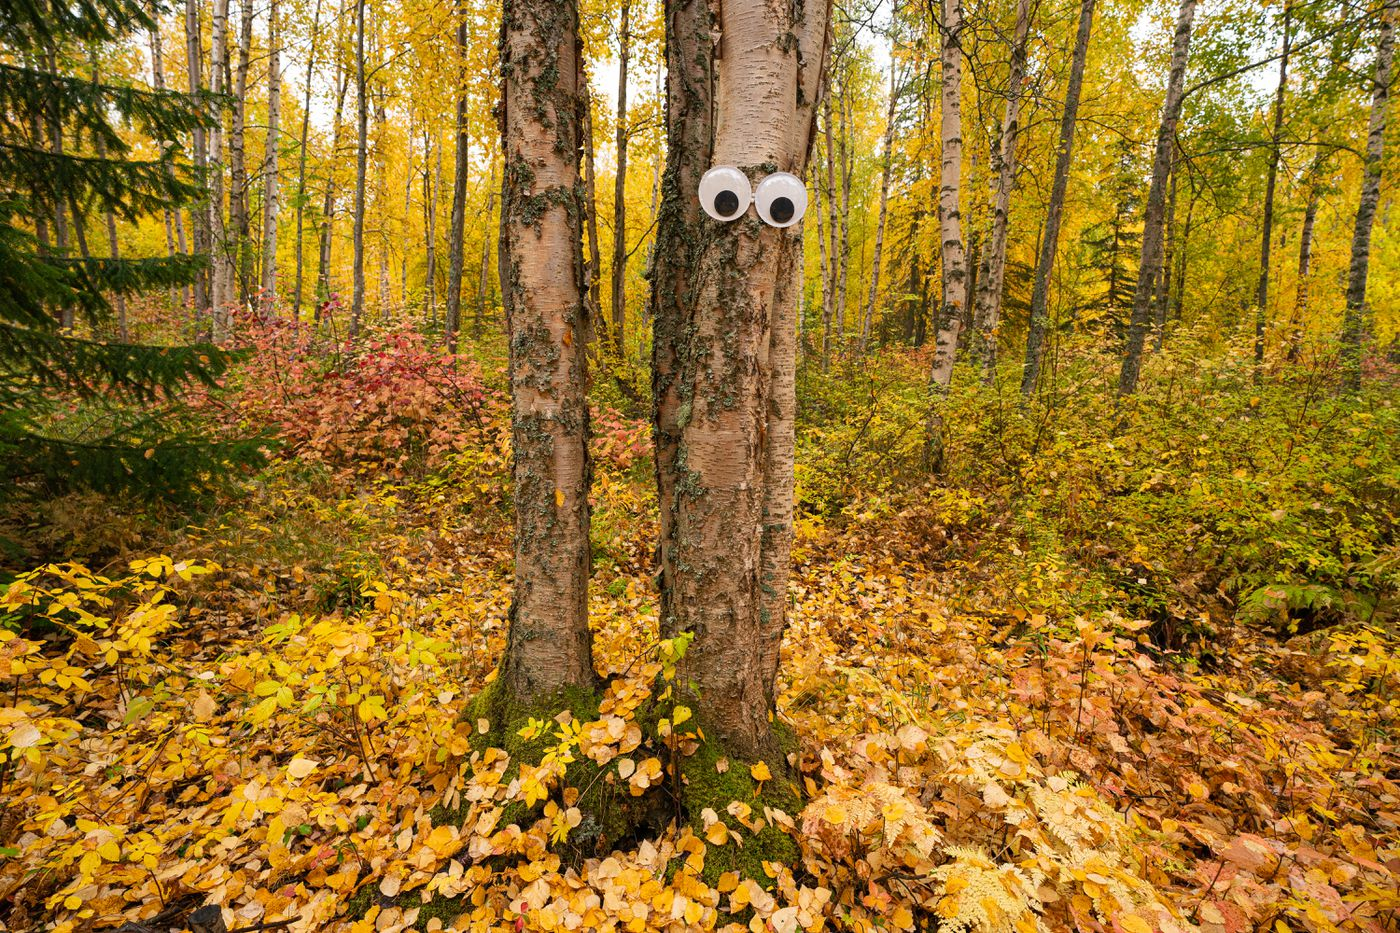 Googly eyes are affixed to a tree at the Alaska Botanical Garden on Thursday, Sept. 24, 2020. The garden has decorated the paths with halloween-themed displays that will be up through October 24. (Loren Holmes / ADN)